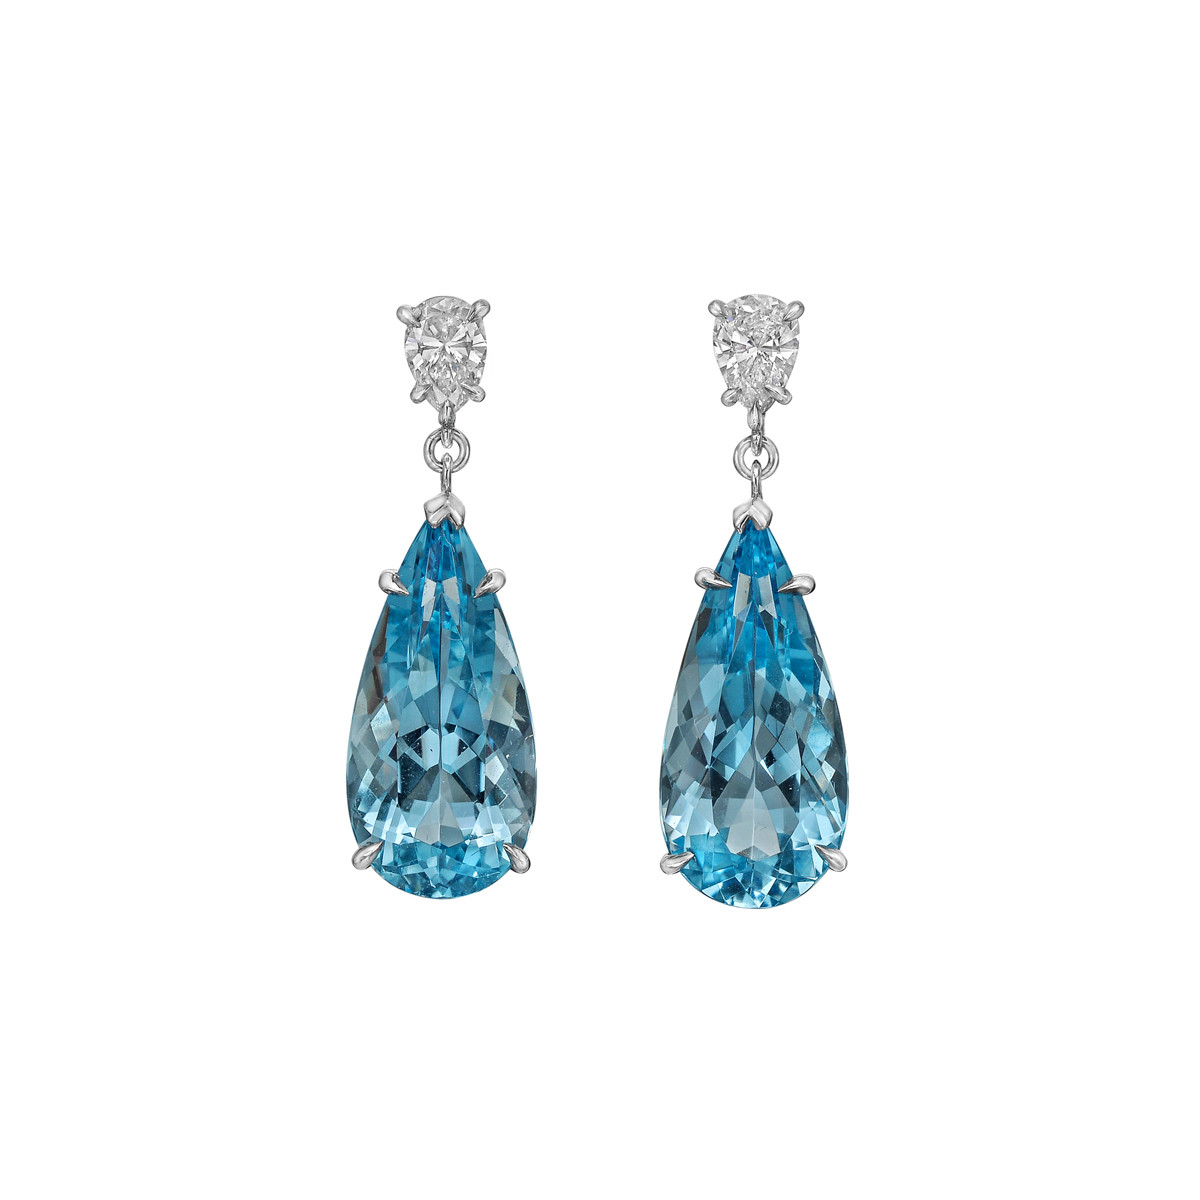 Aquamarine & Diamond Pendant Earrings